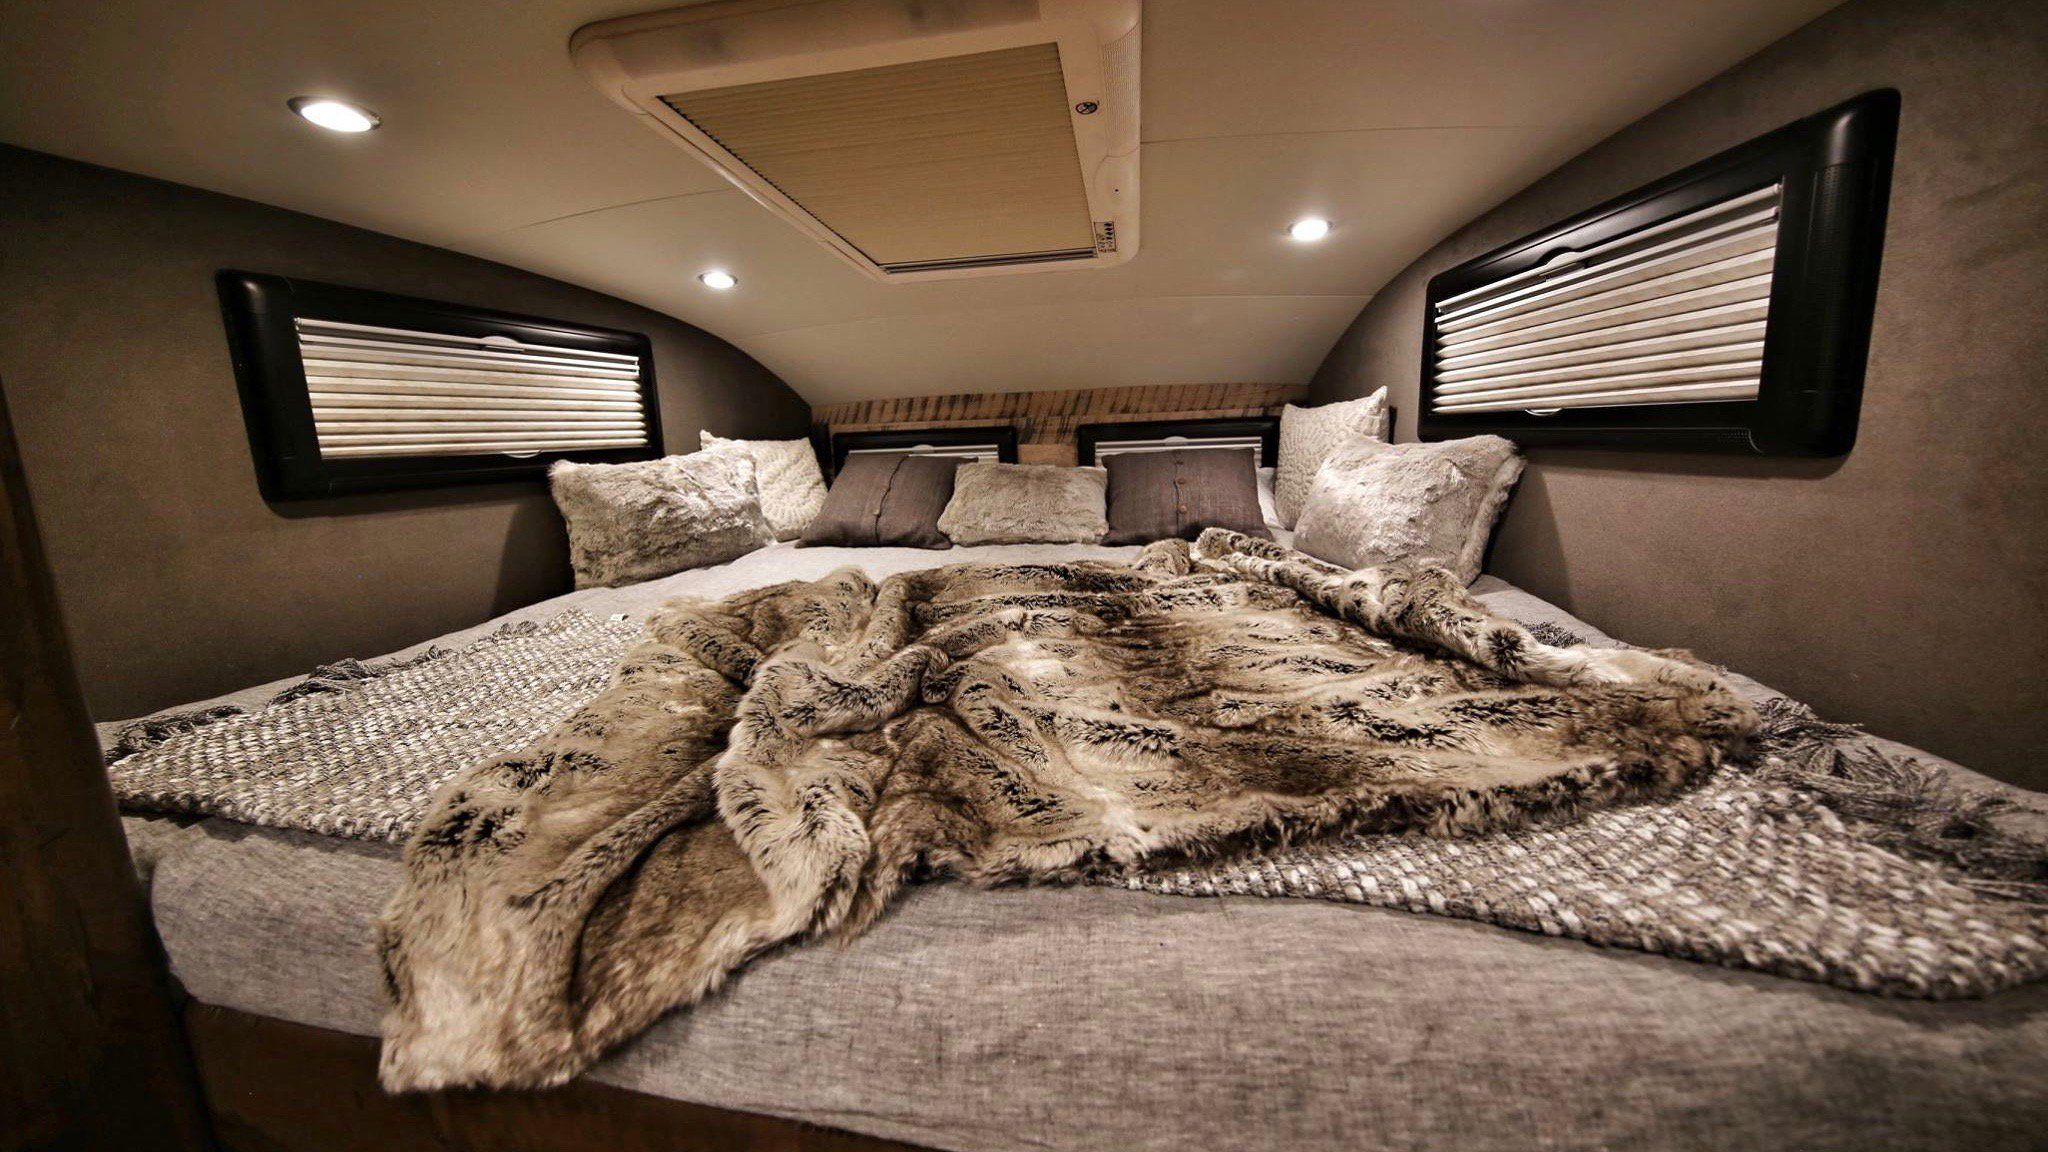 The 1 5 Million Earthroamer Is The Most Luxurious Offroad Rv You Ve Ever Seen Camper Luxury Cool Campers